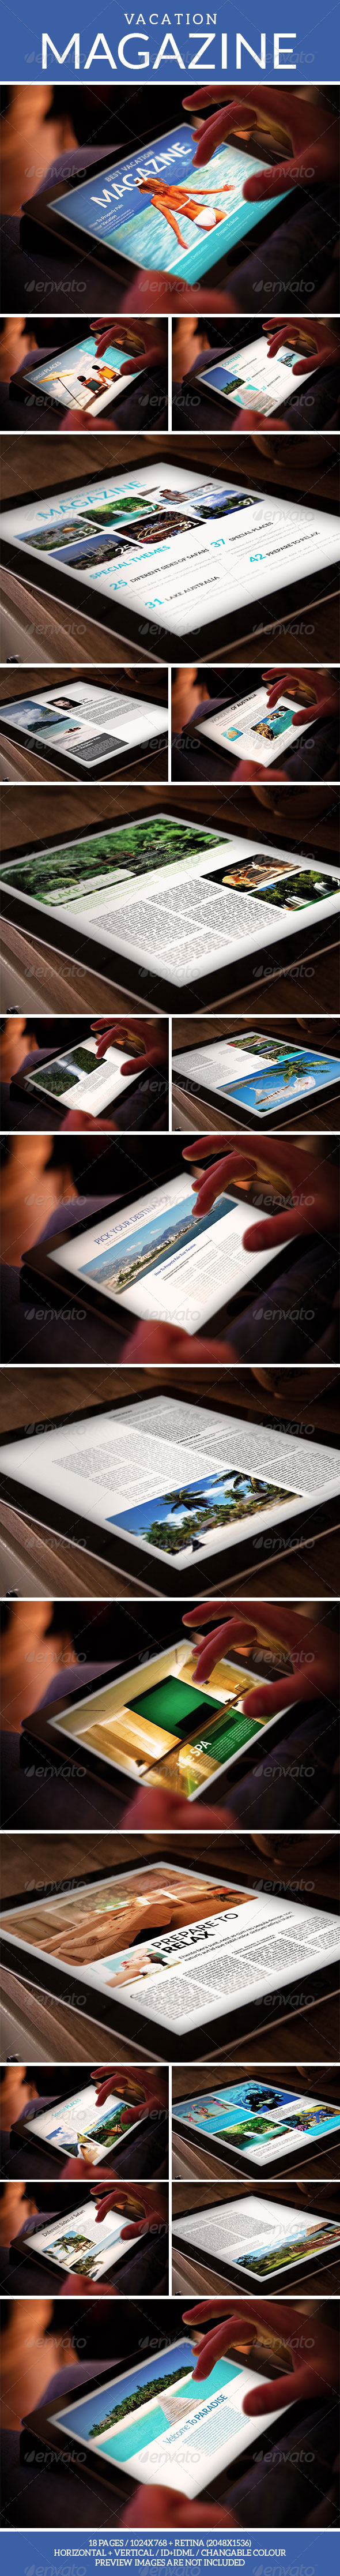 GraphicRiver Tablet Vacation Magazine Template 7347333